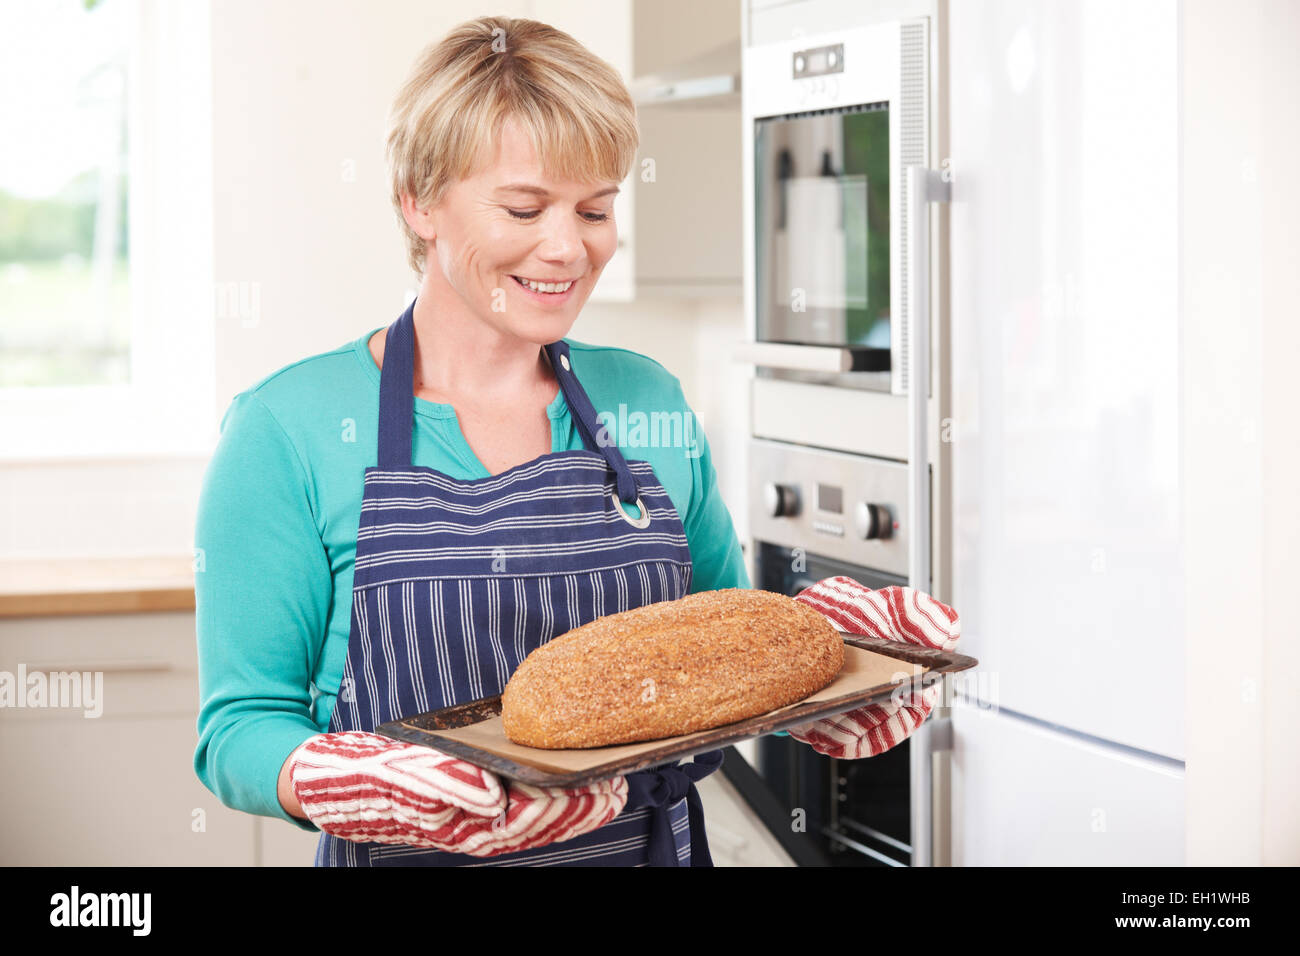 Woman Holding Tray With Home Made Loaf Of Bread Stock Photo